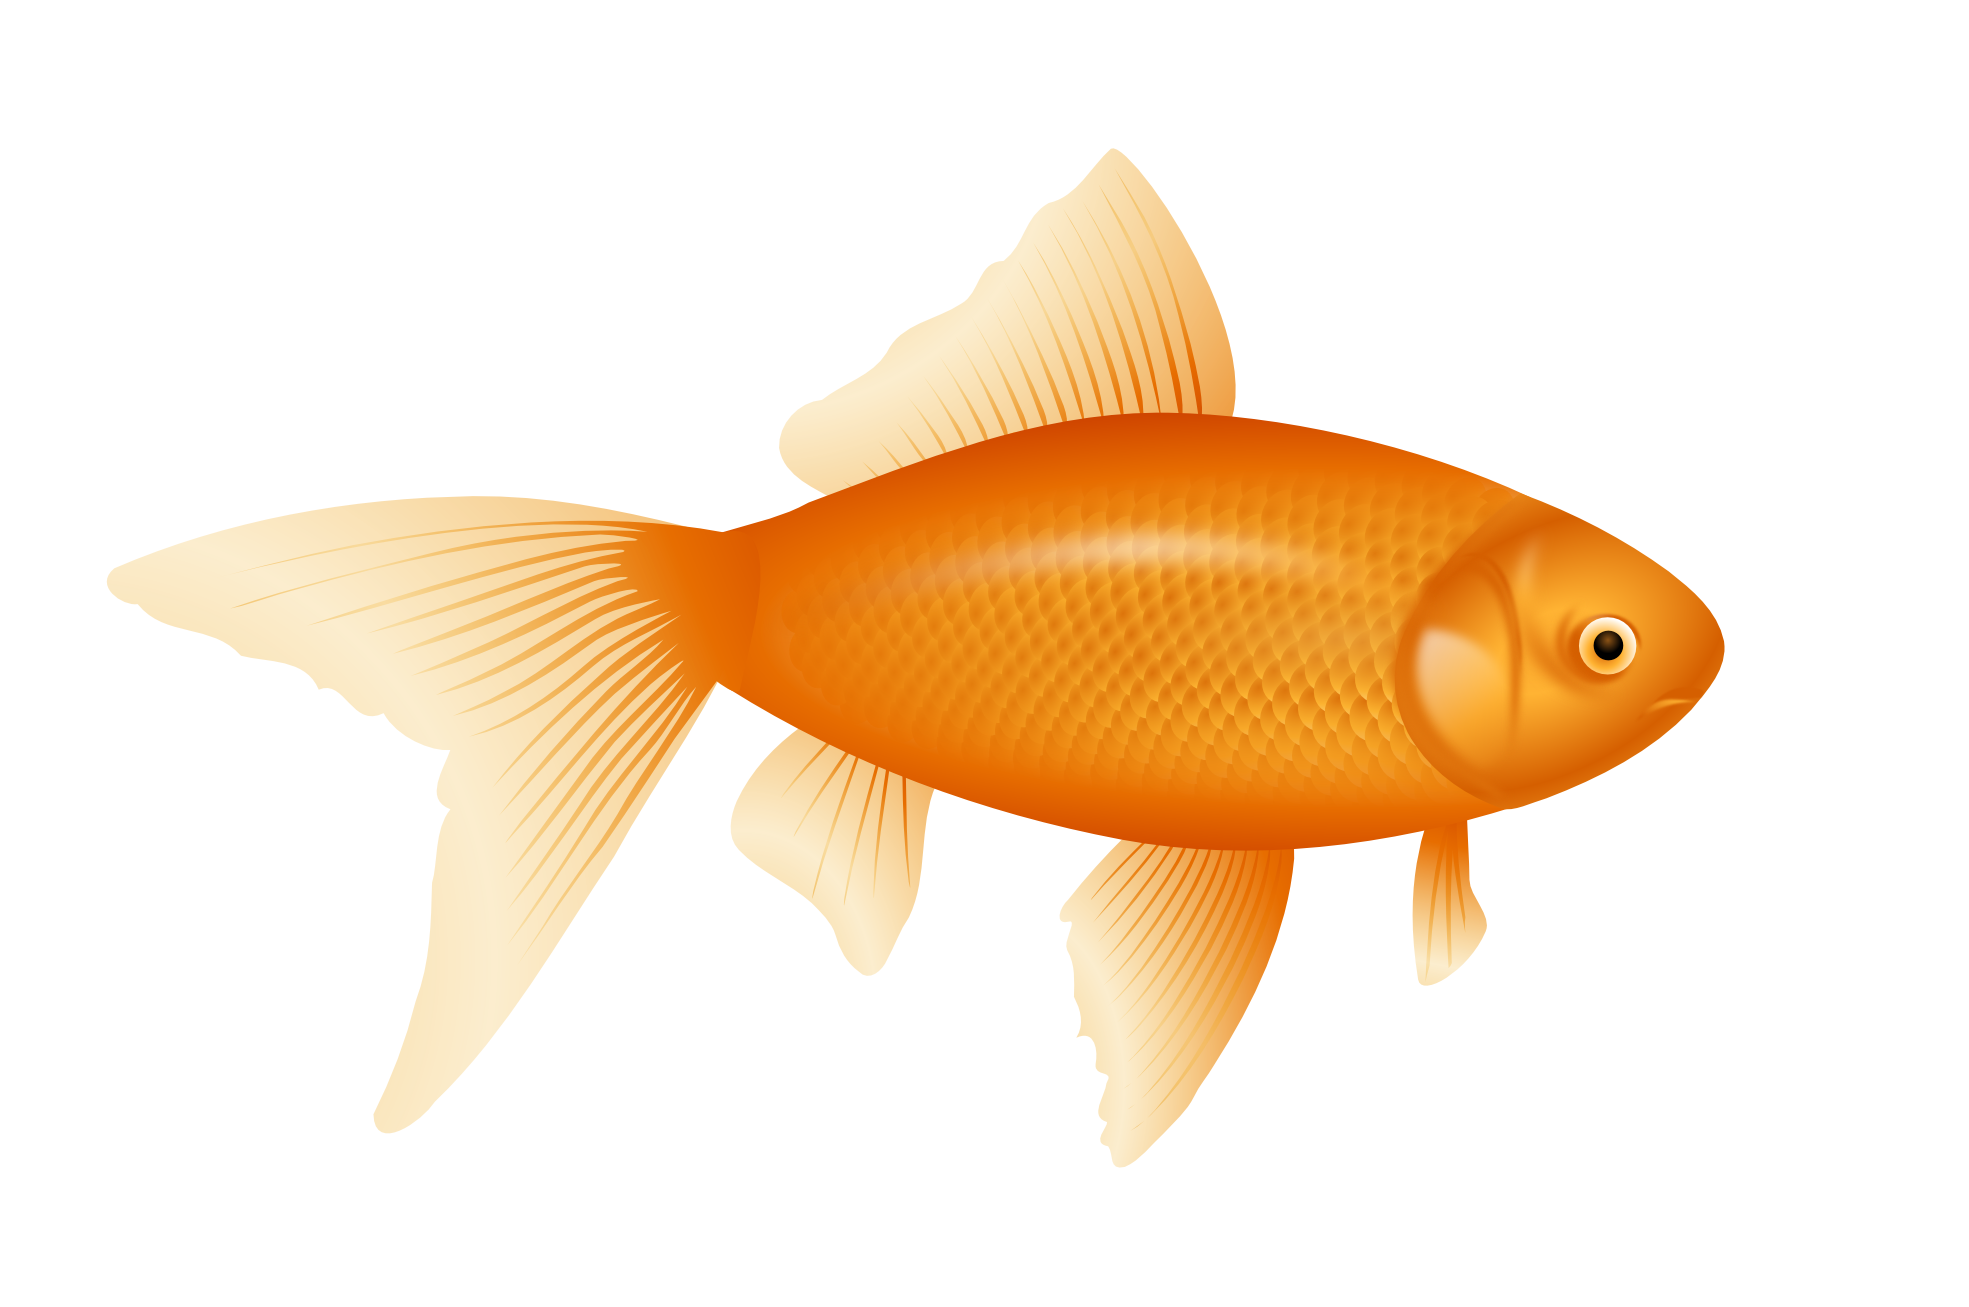 Orange Cartoon Fish 1446.56 Kb